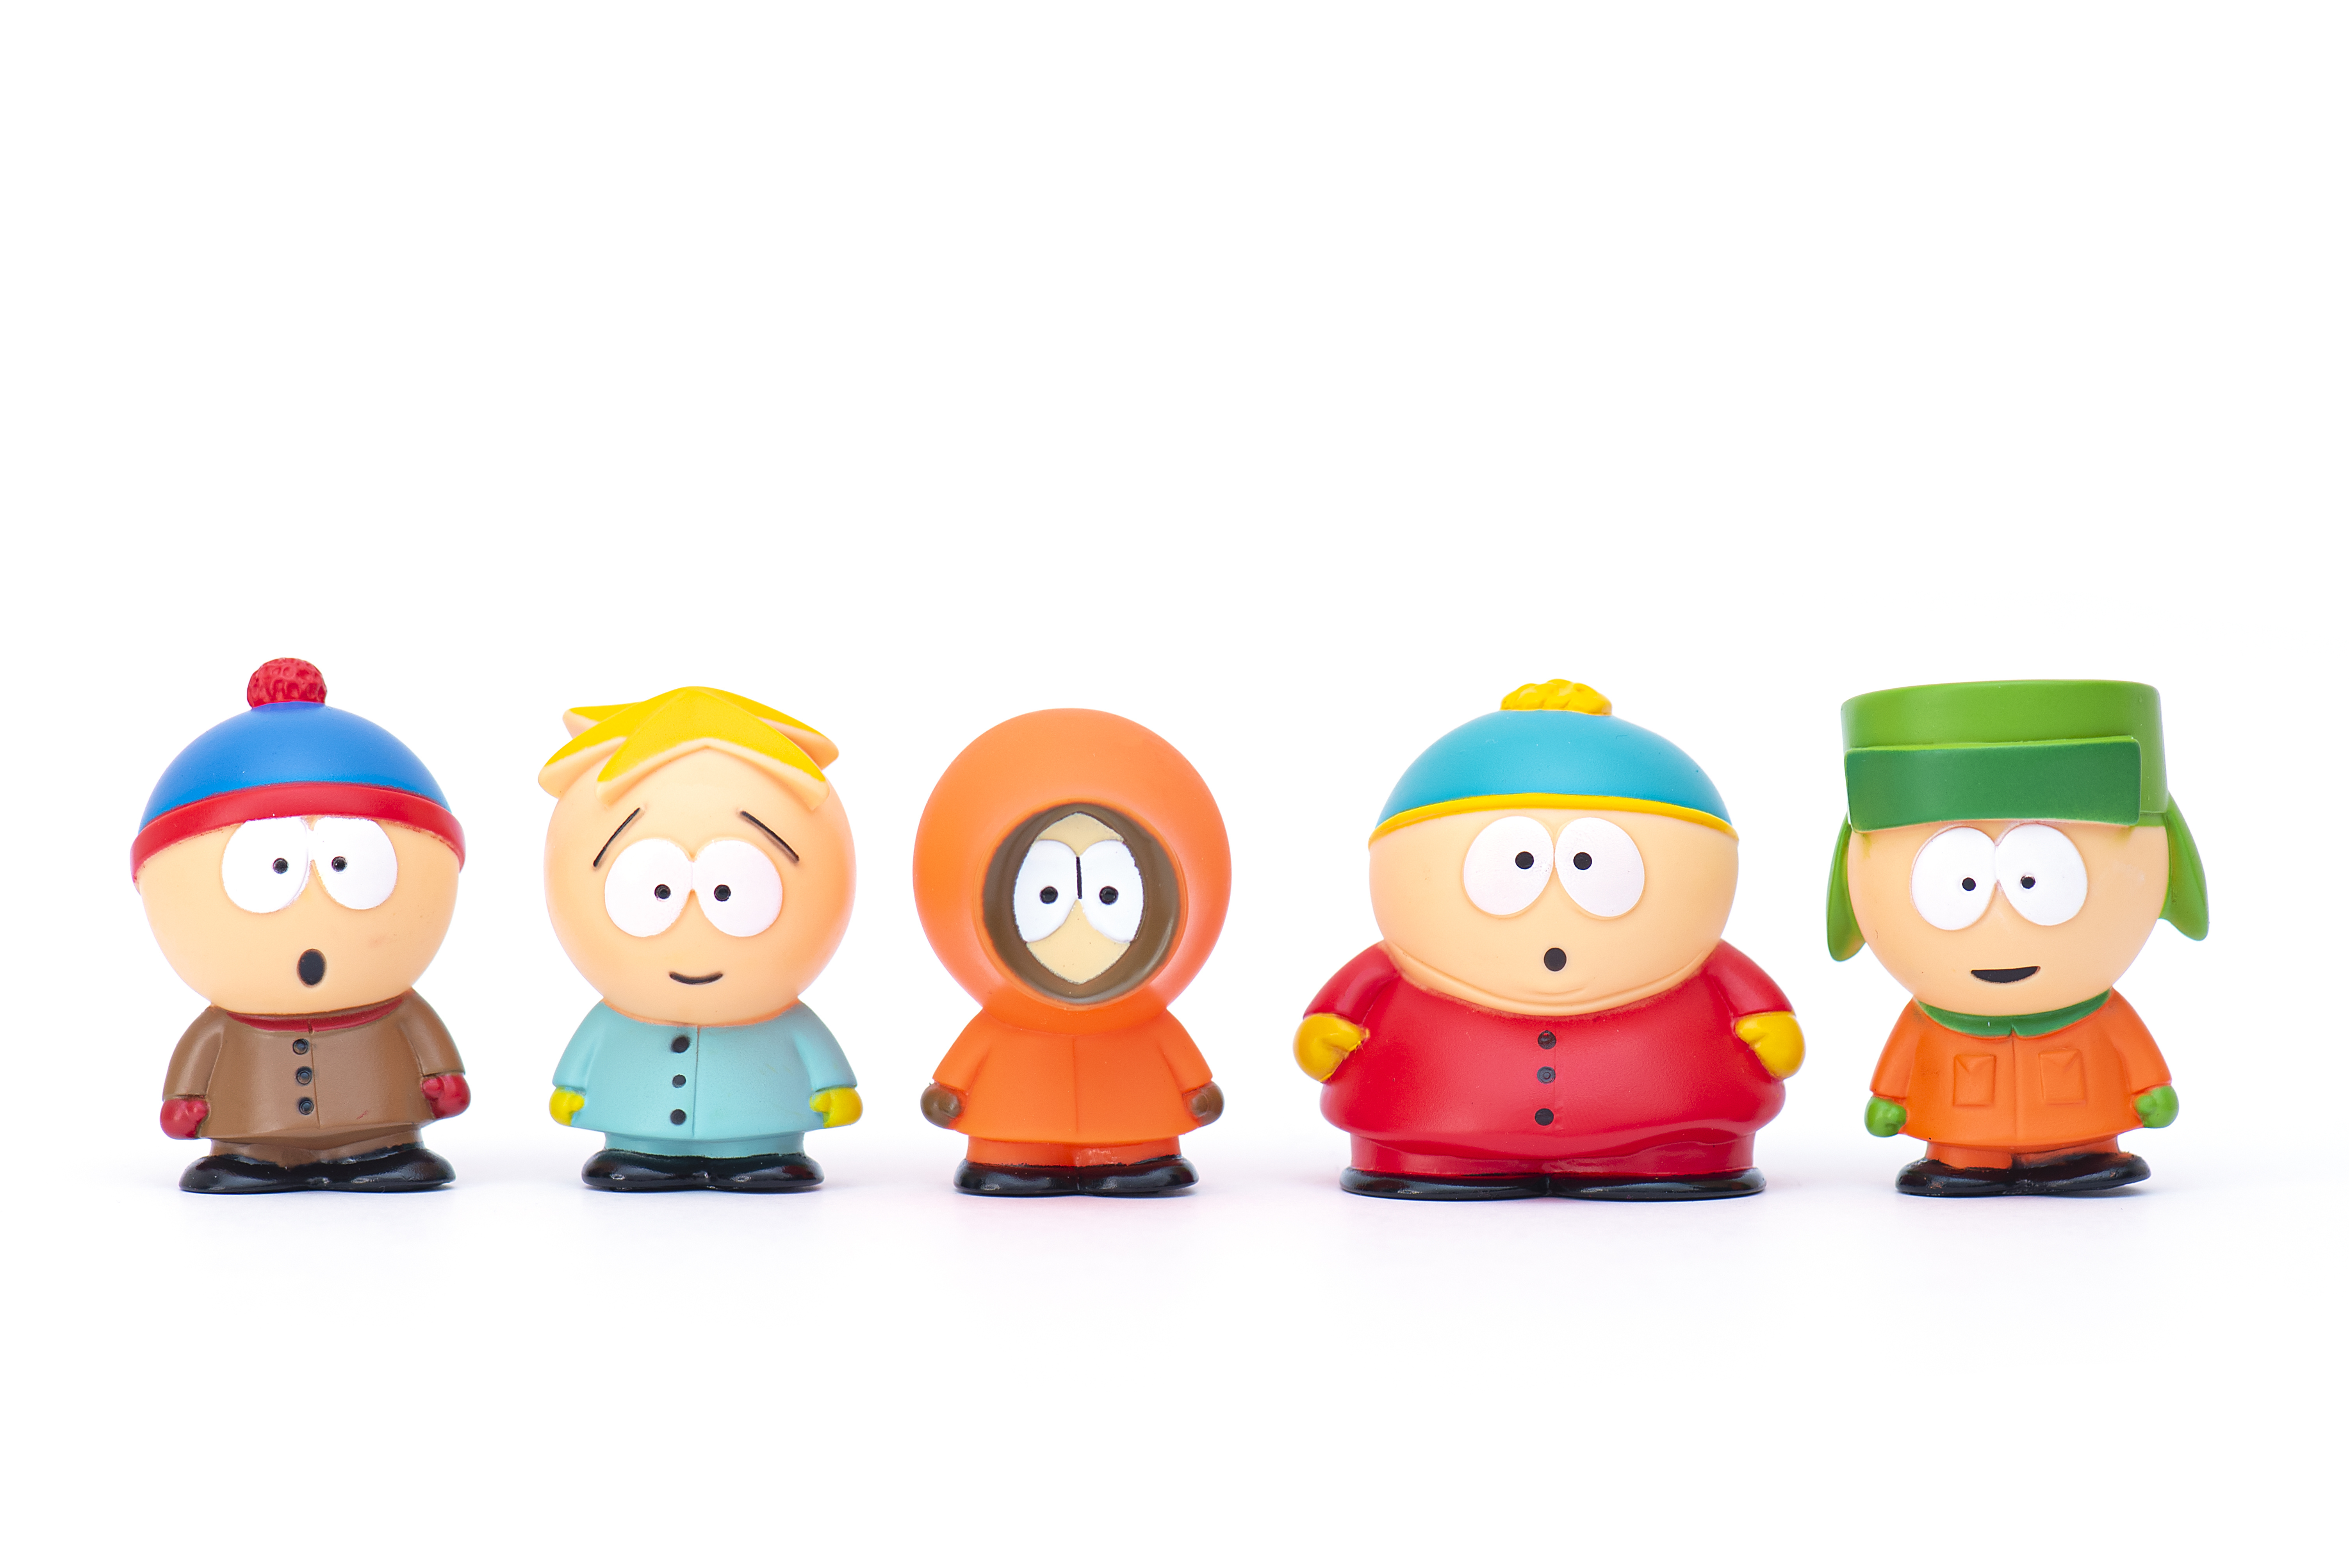 Morgan Stanley's Dennis Lynch Compares Bitcoin to Kenny from South Park